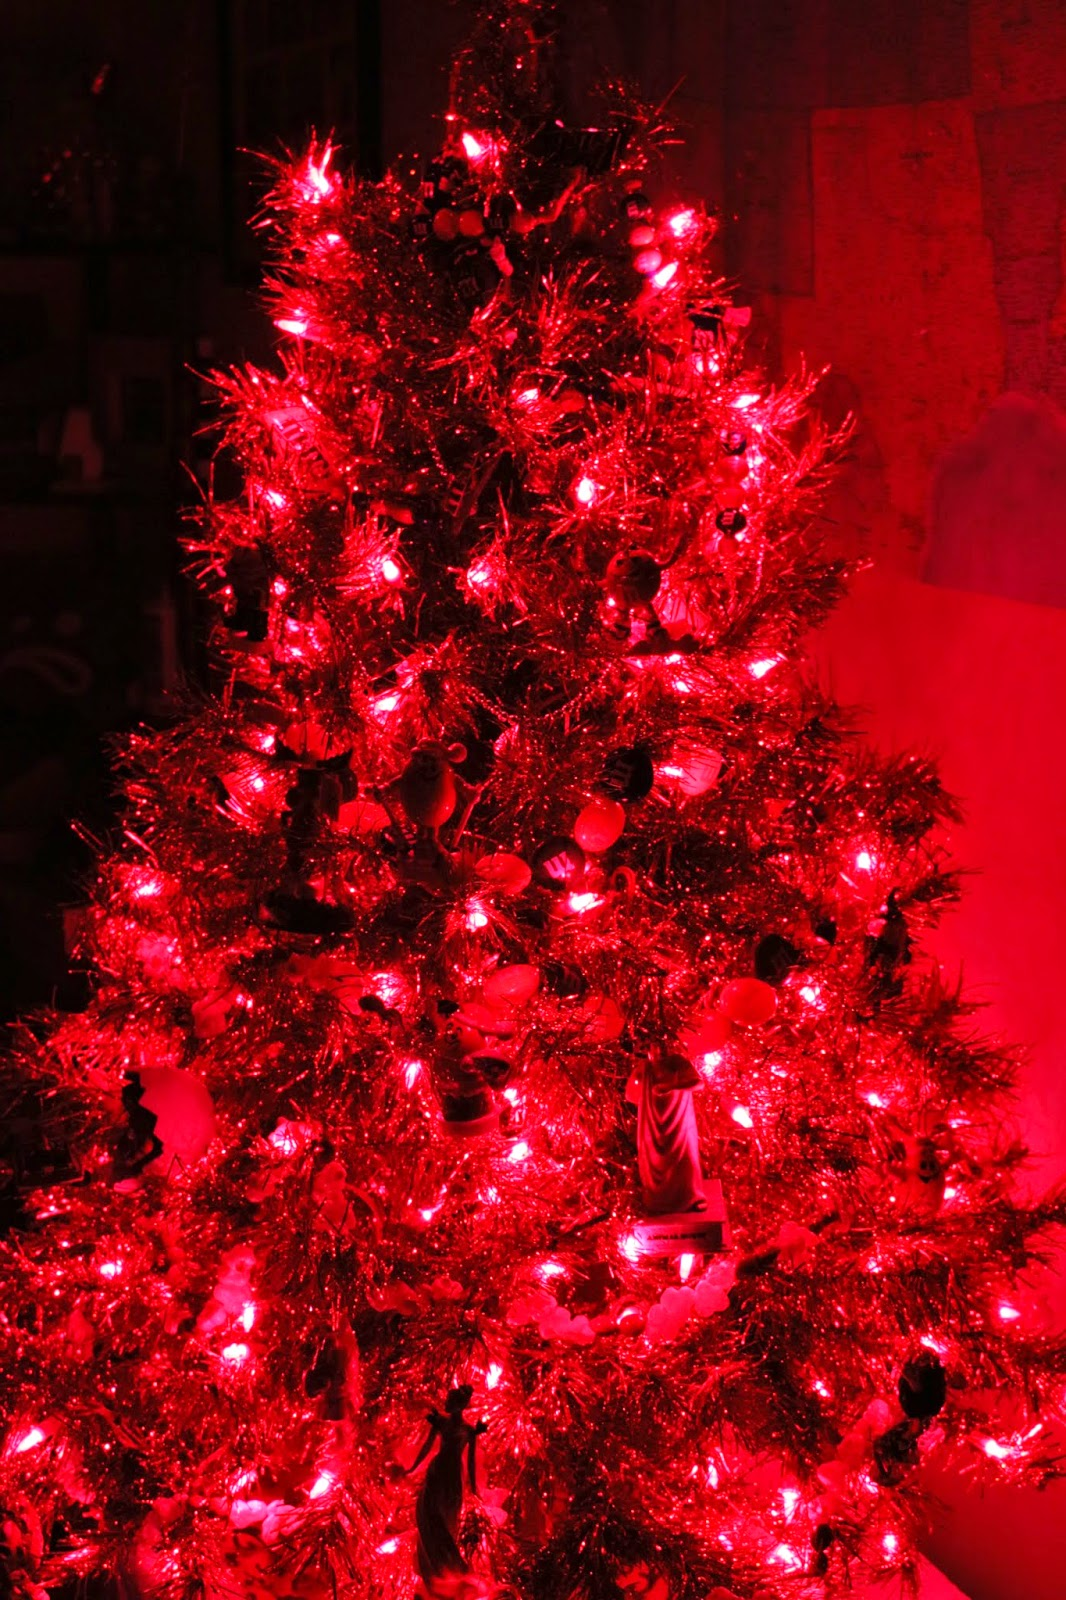 Crazy Shenanigans: The Red Movie Christmas Tree